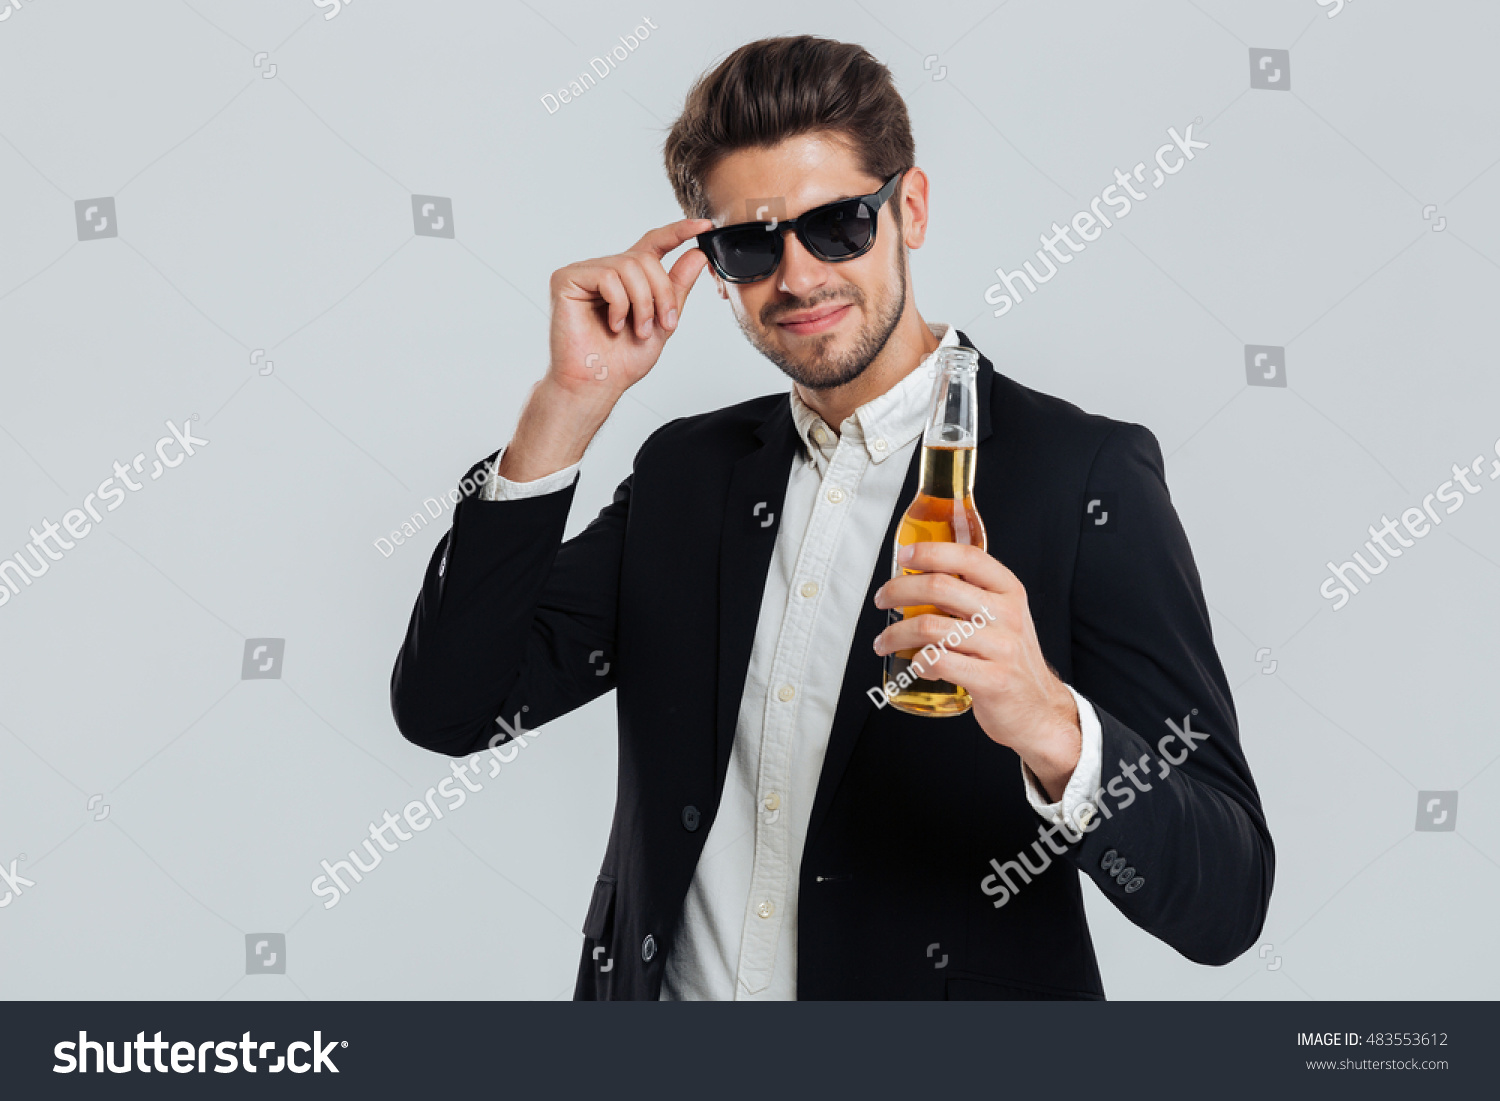 c84b614ebbe1 Smiling stylish man in sunglasses and black suit holding beer bottle over grey  background